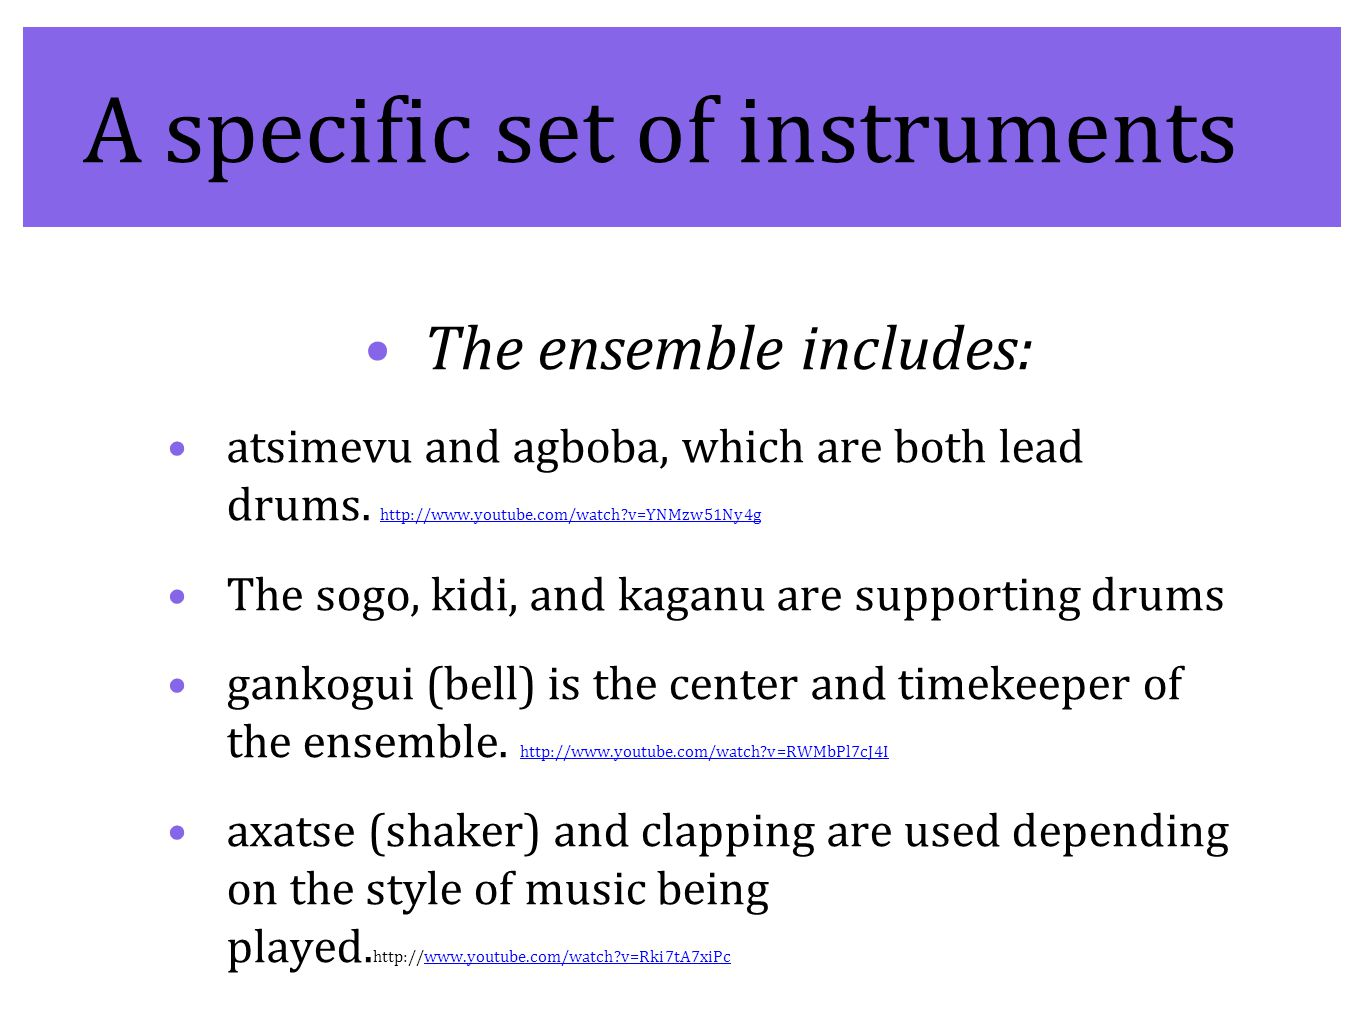 A specific set of instruments The ensemble includes: atsimevu and agboba, which are both lead drums.